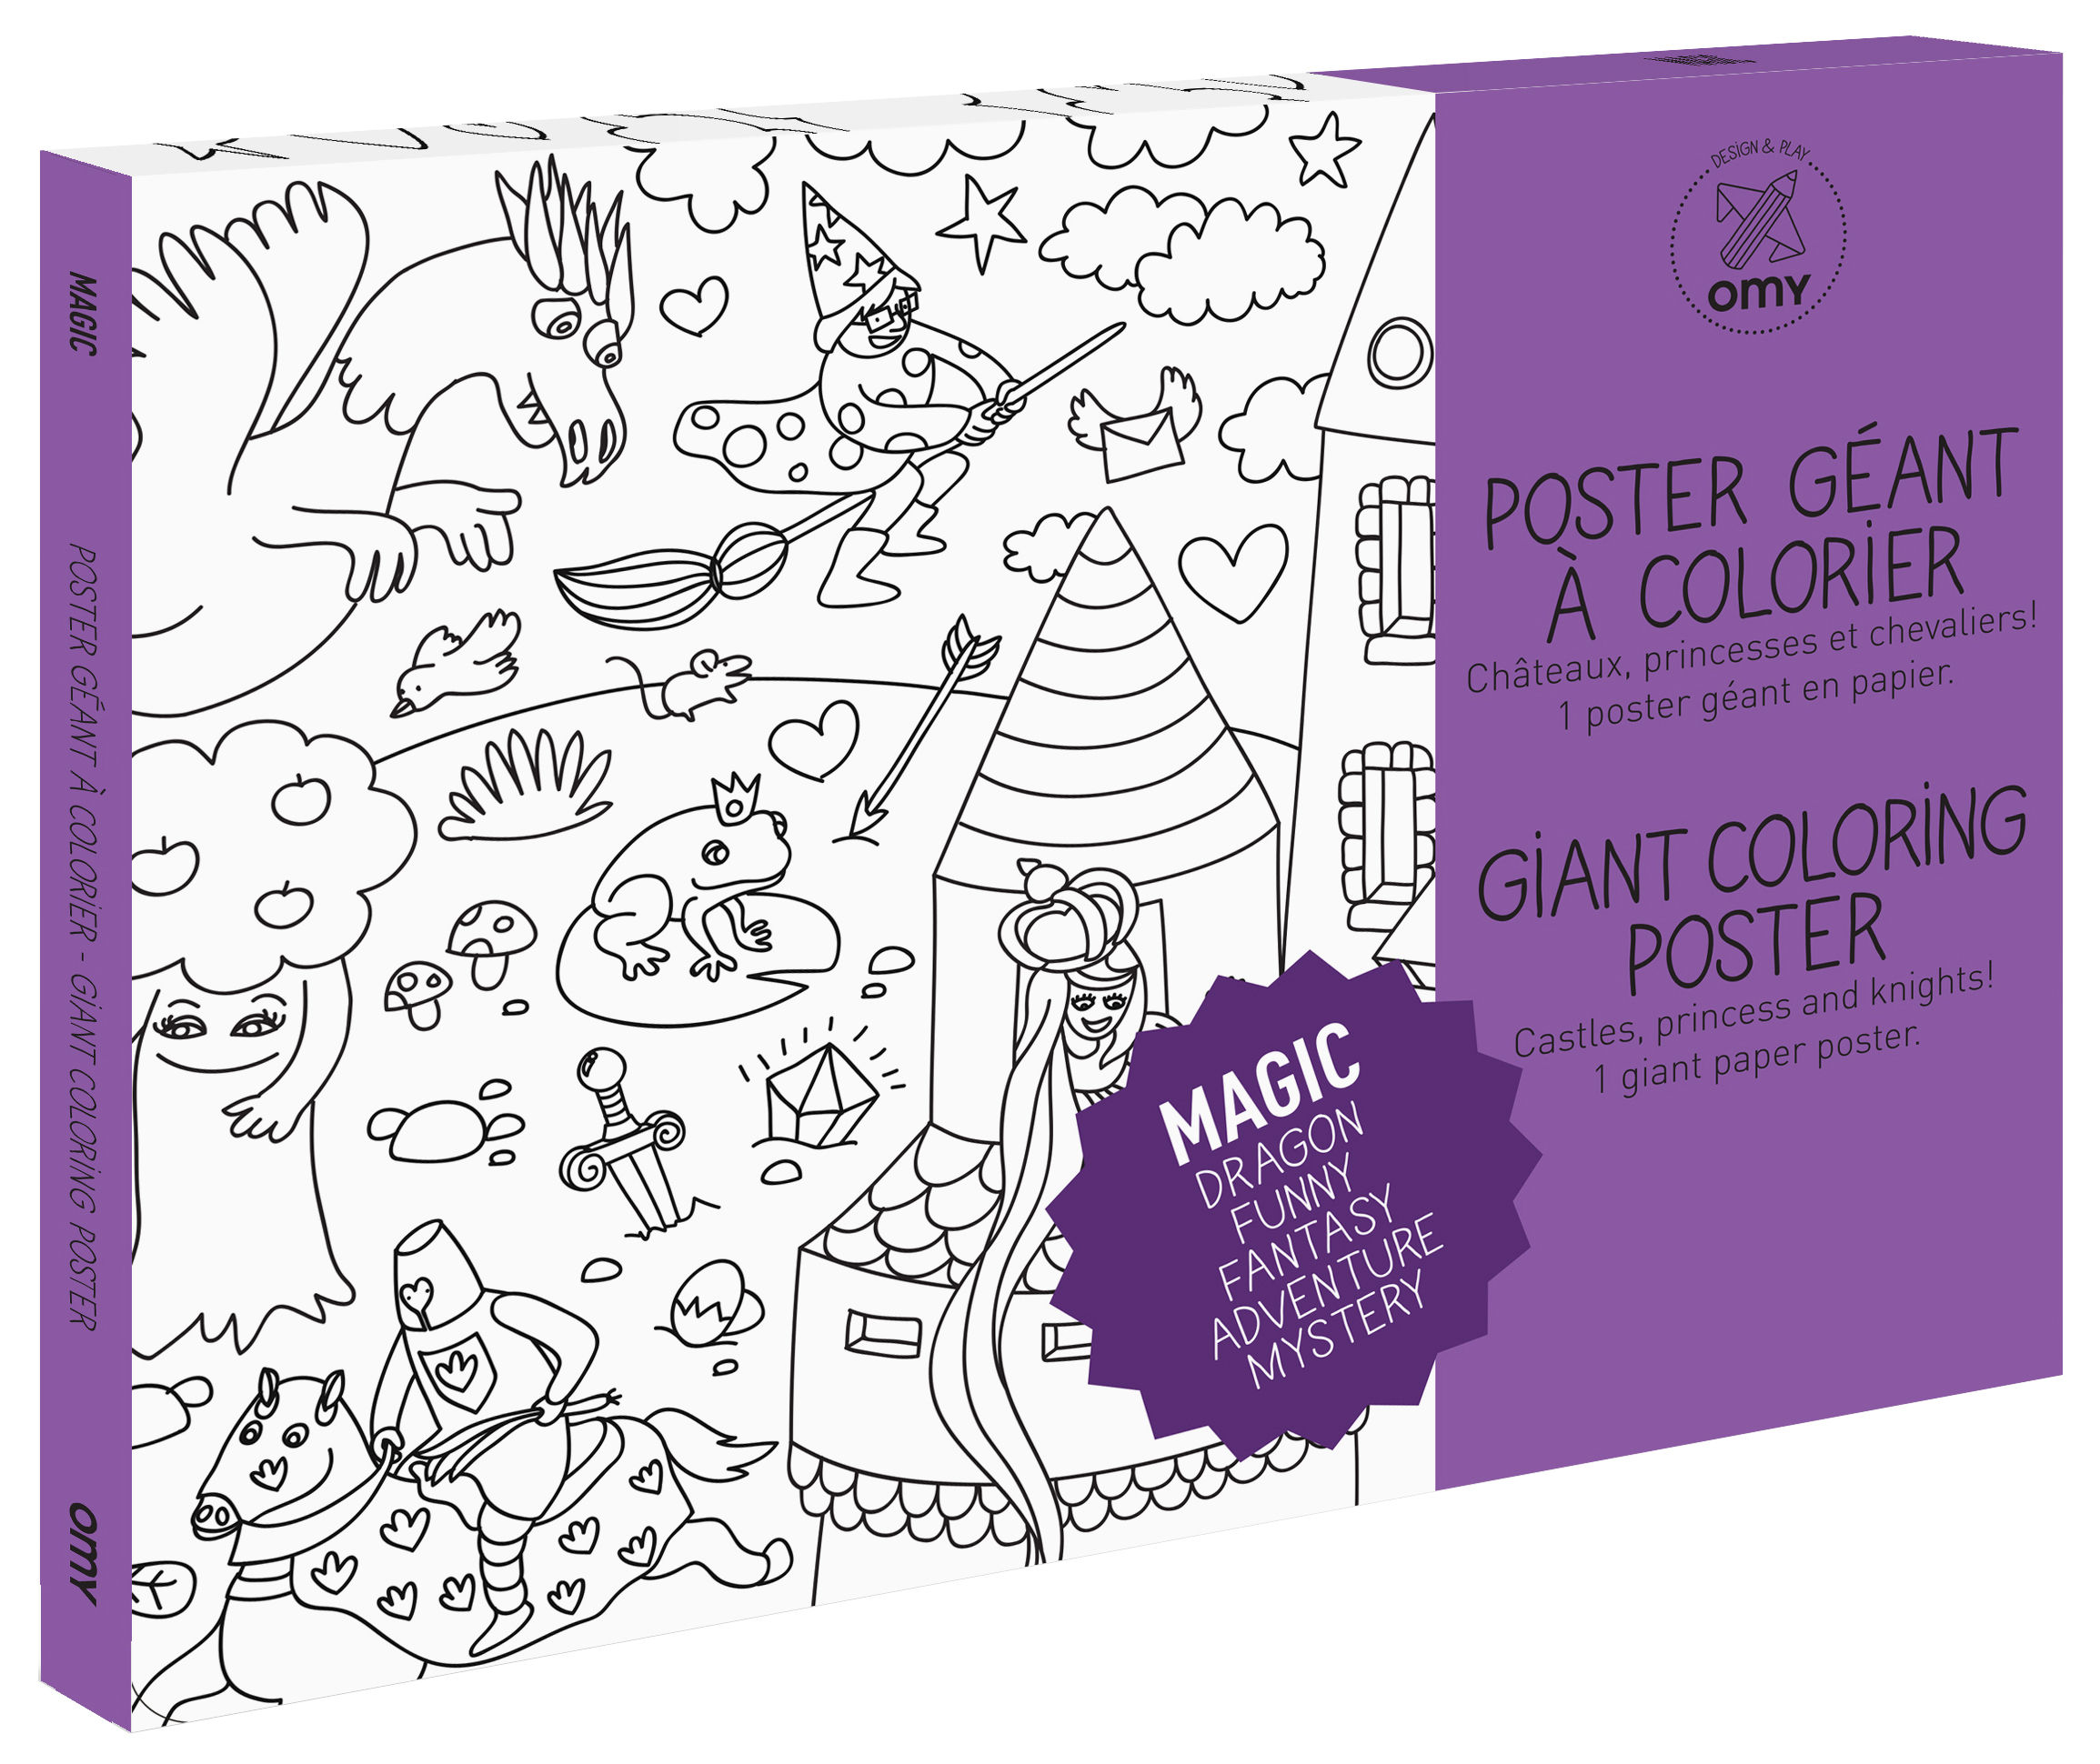 Decoration - Children's Home Accessories - Magic Colouring poster - / Giant - L 115 x 80 cm by OMY Design & Play - Black, White - Papier recyclé